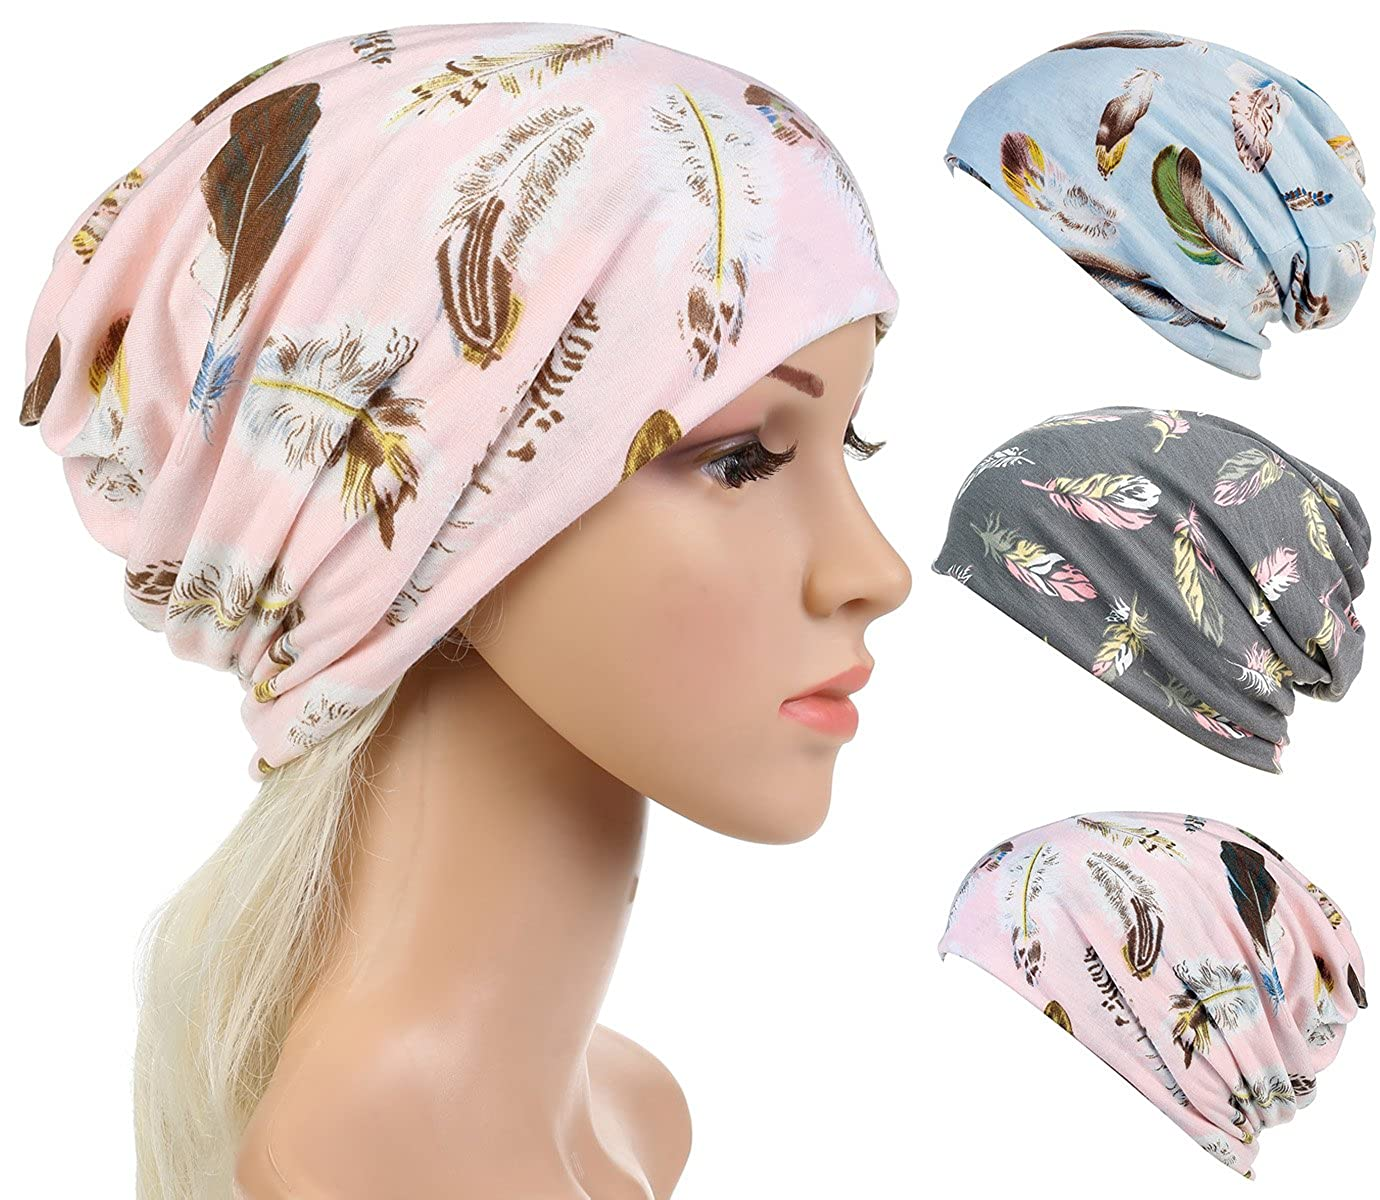 DancMolly Slouchy Chemo Caps for Women Hood Cotton Baggy Turban Hats Chunky Beanie with Cut Feather Prints for Cancer